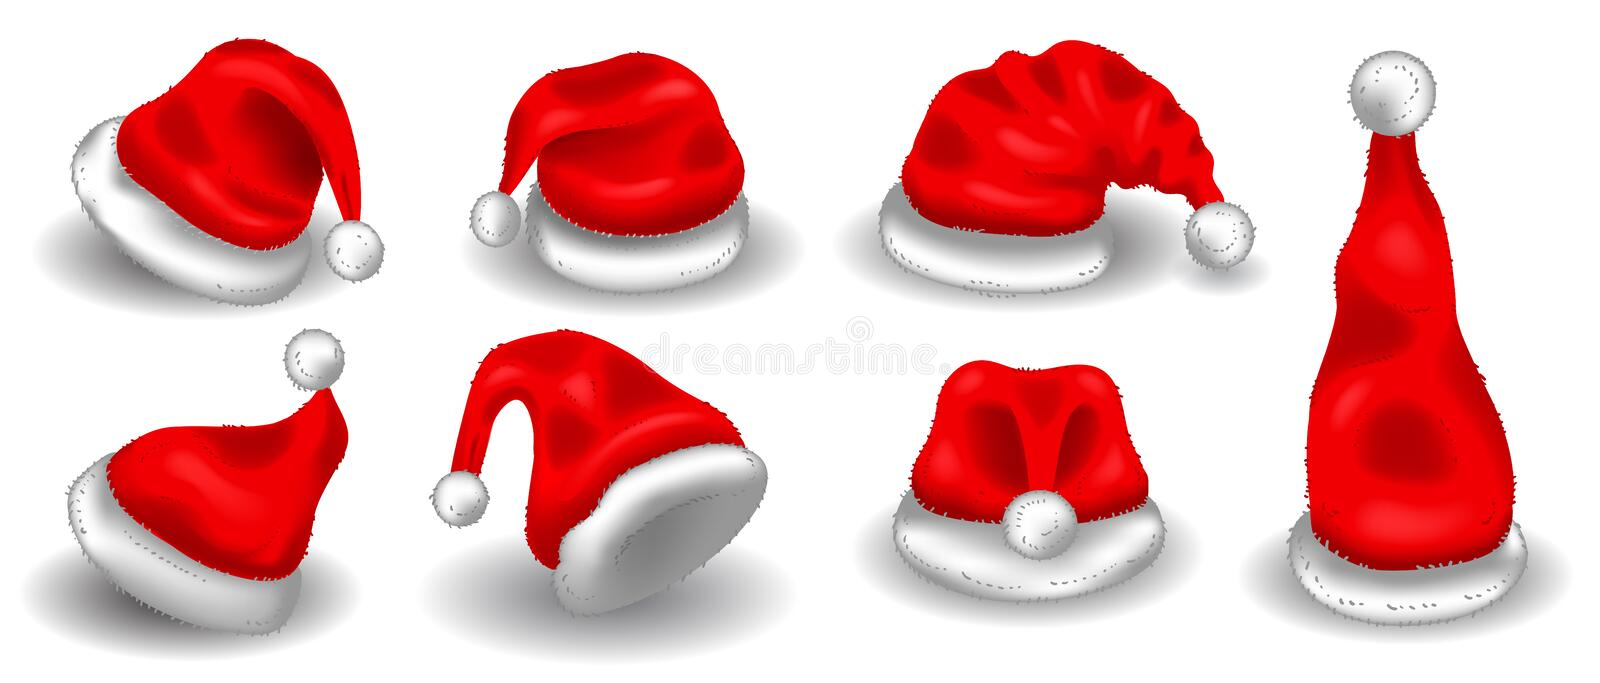 Realistic christmas santa claus red hats isolated vector set. Santa claus cap to xmas holiday celebration illustration royalty free illustration